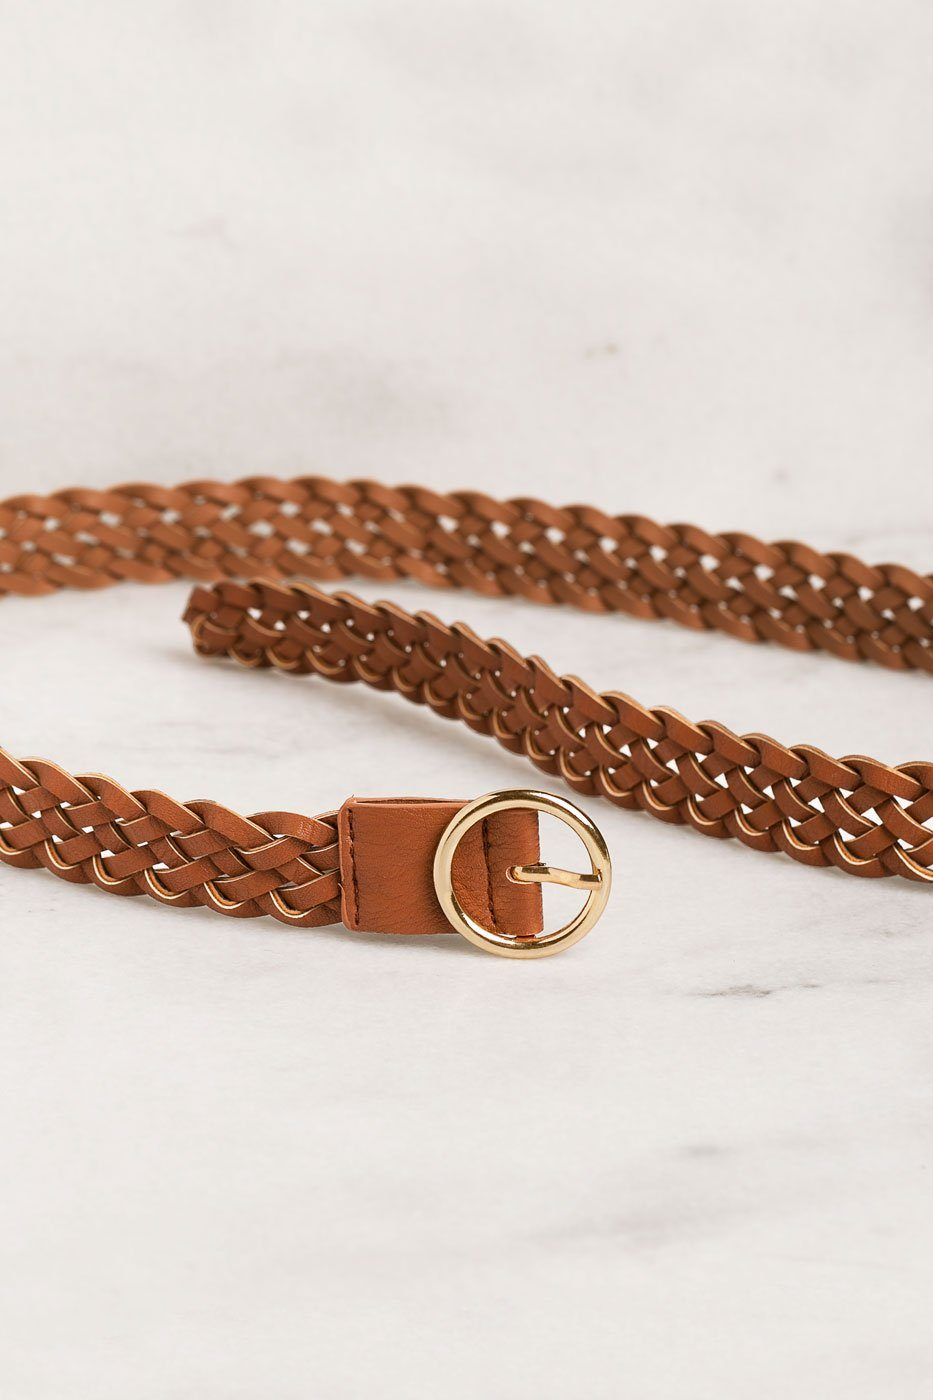 Tan Braided Belt with Gold Buckle